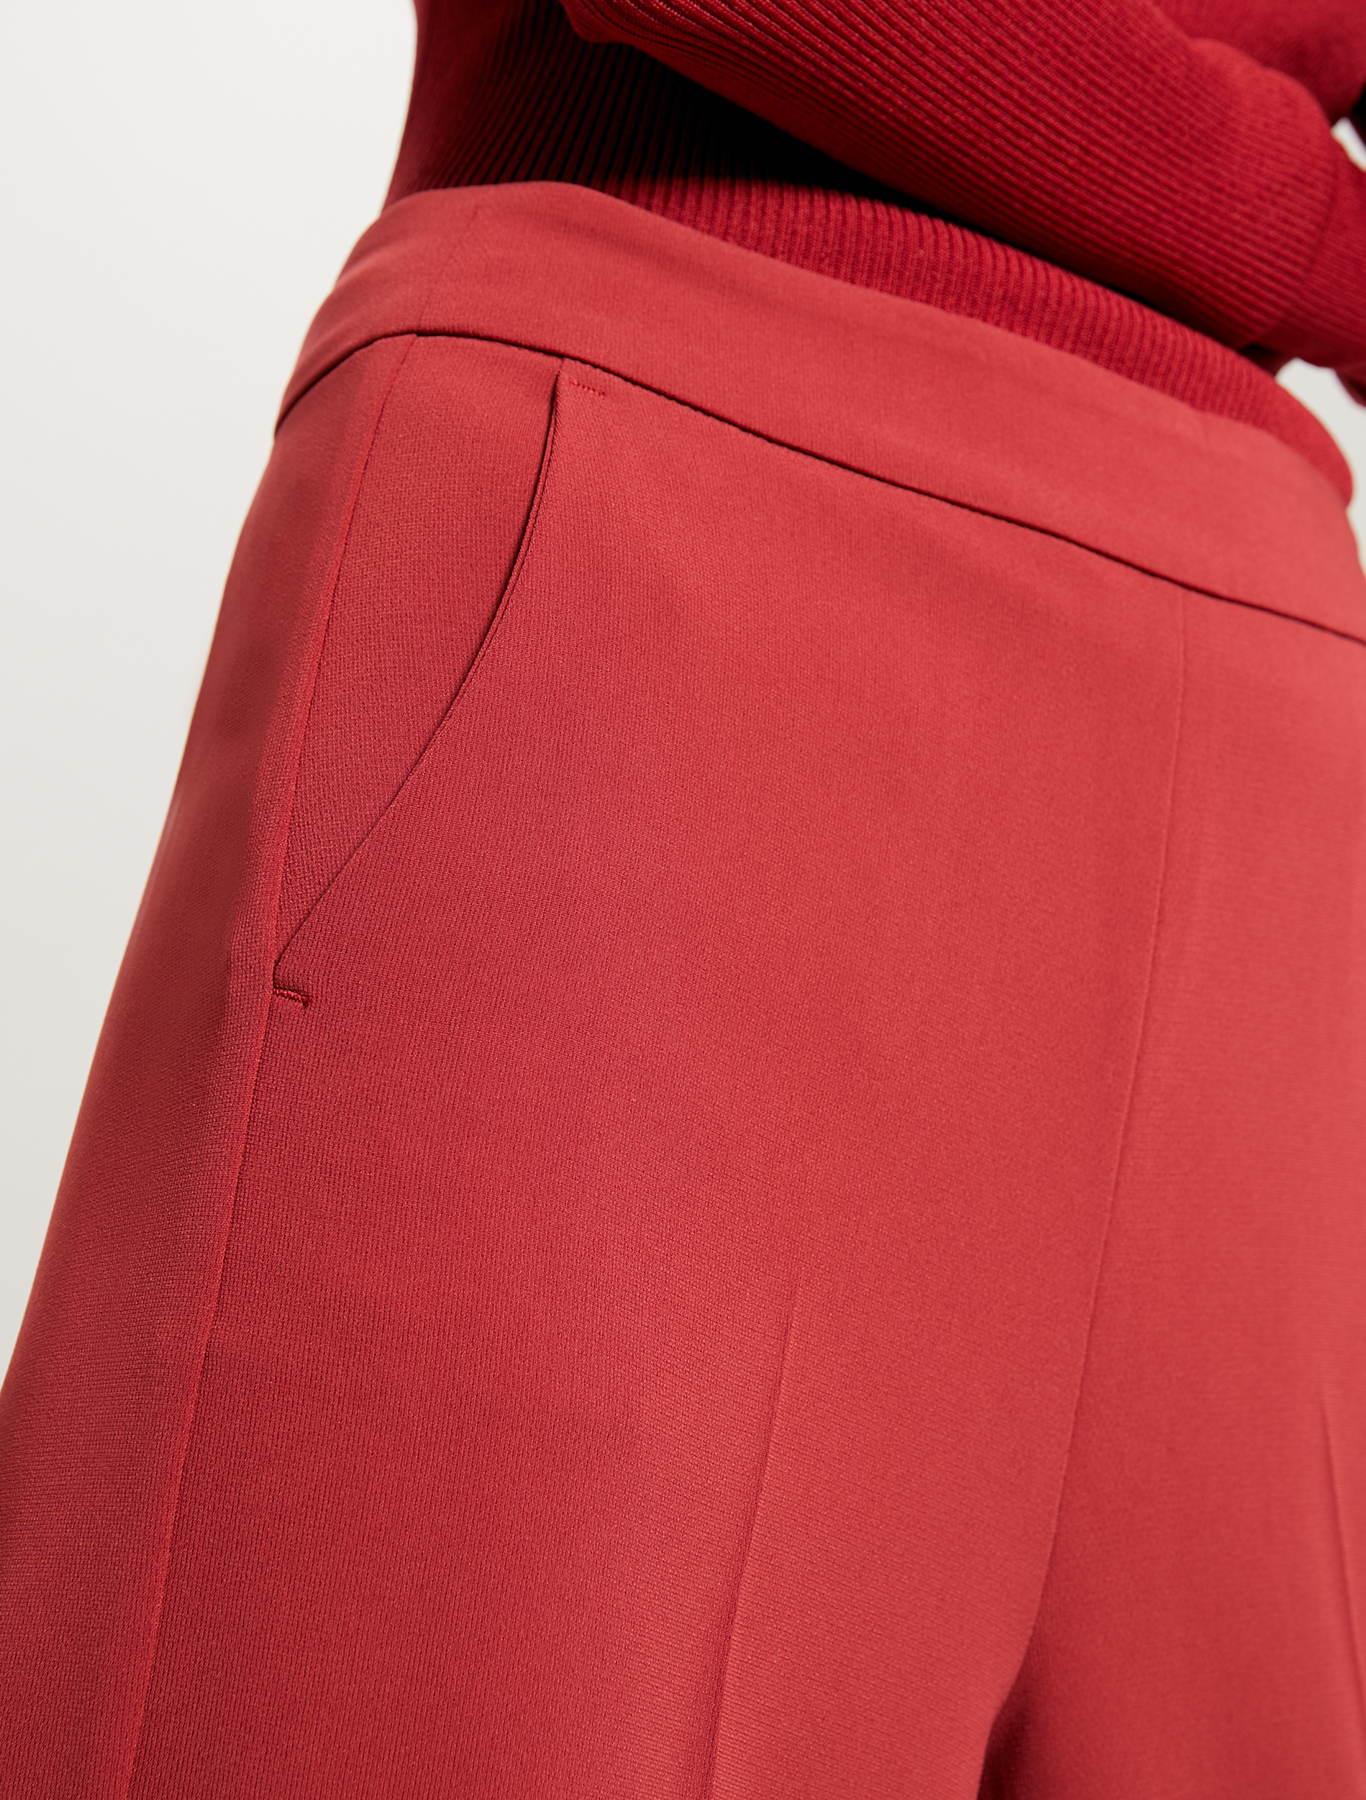 Fluid cropped trousers - red - pennyblack